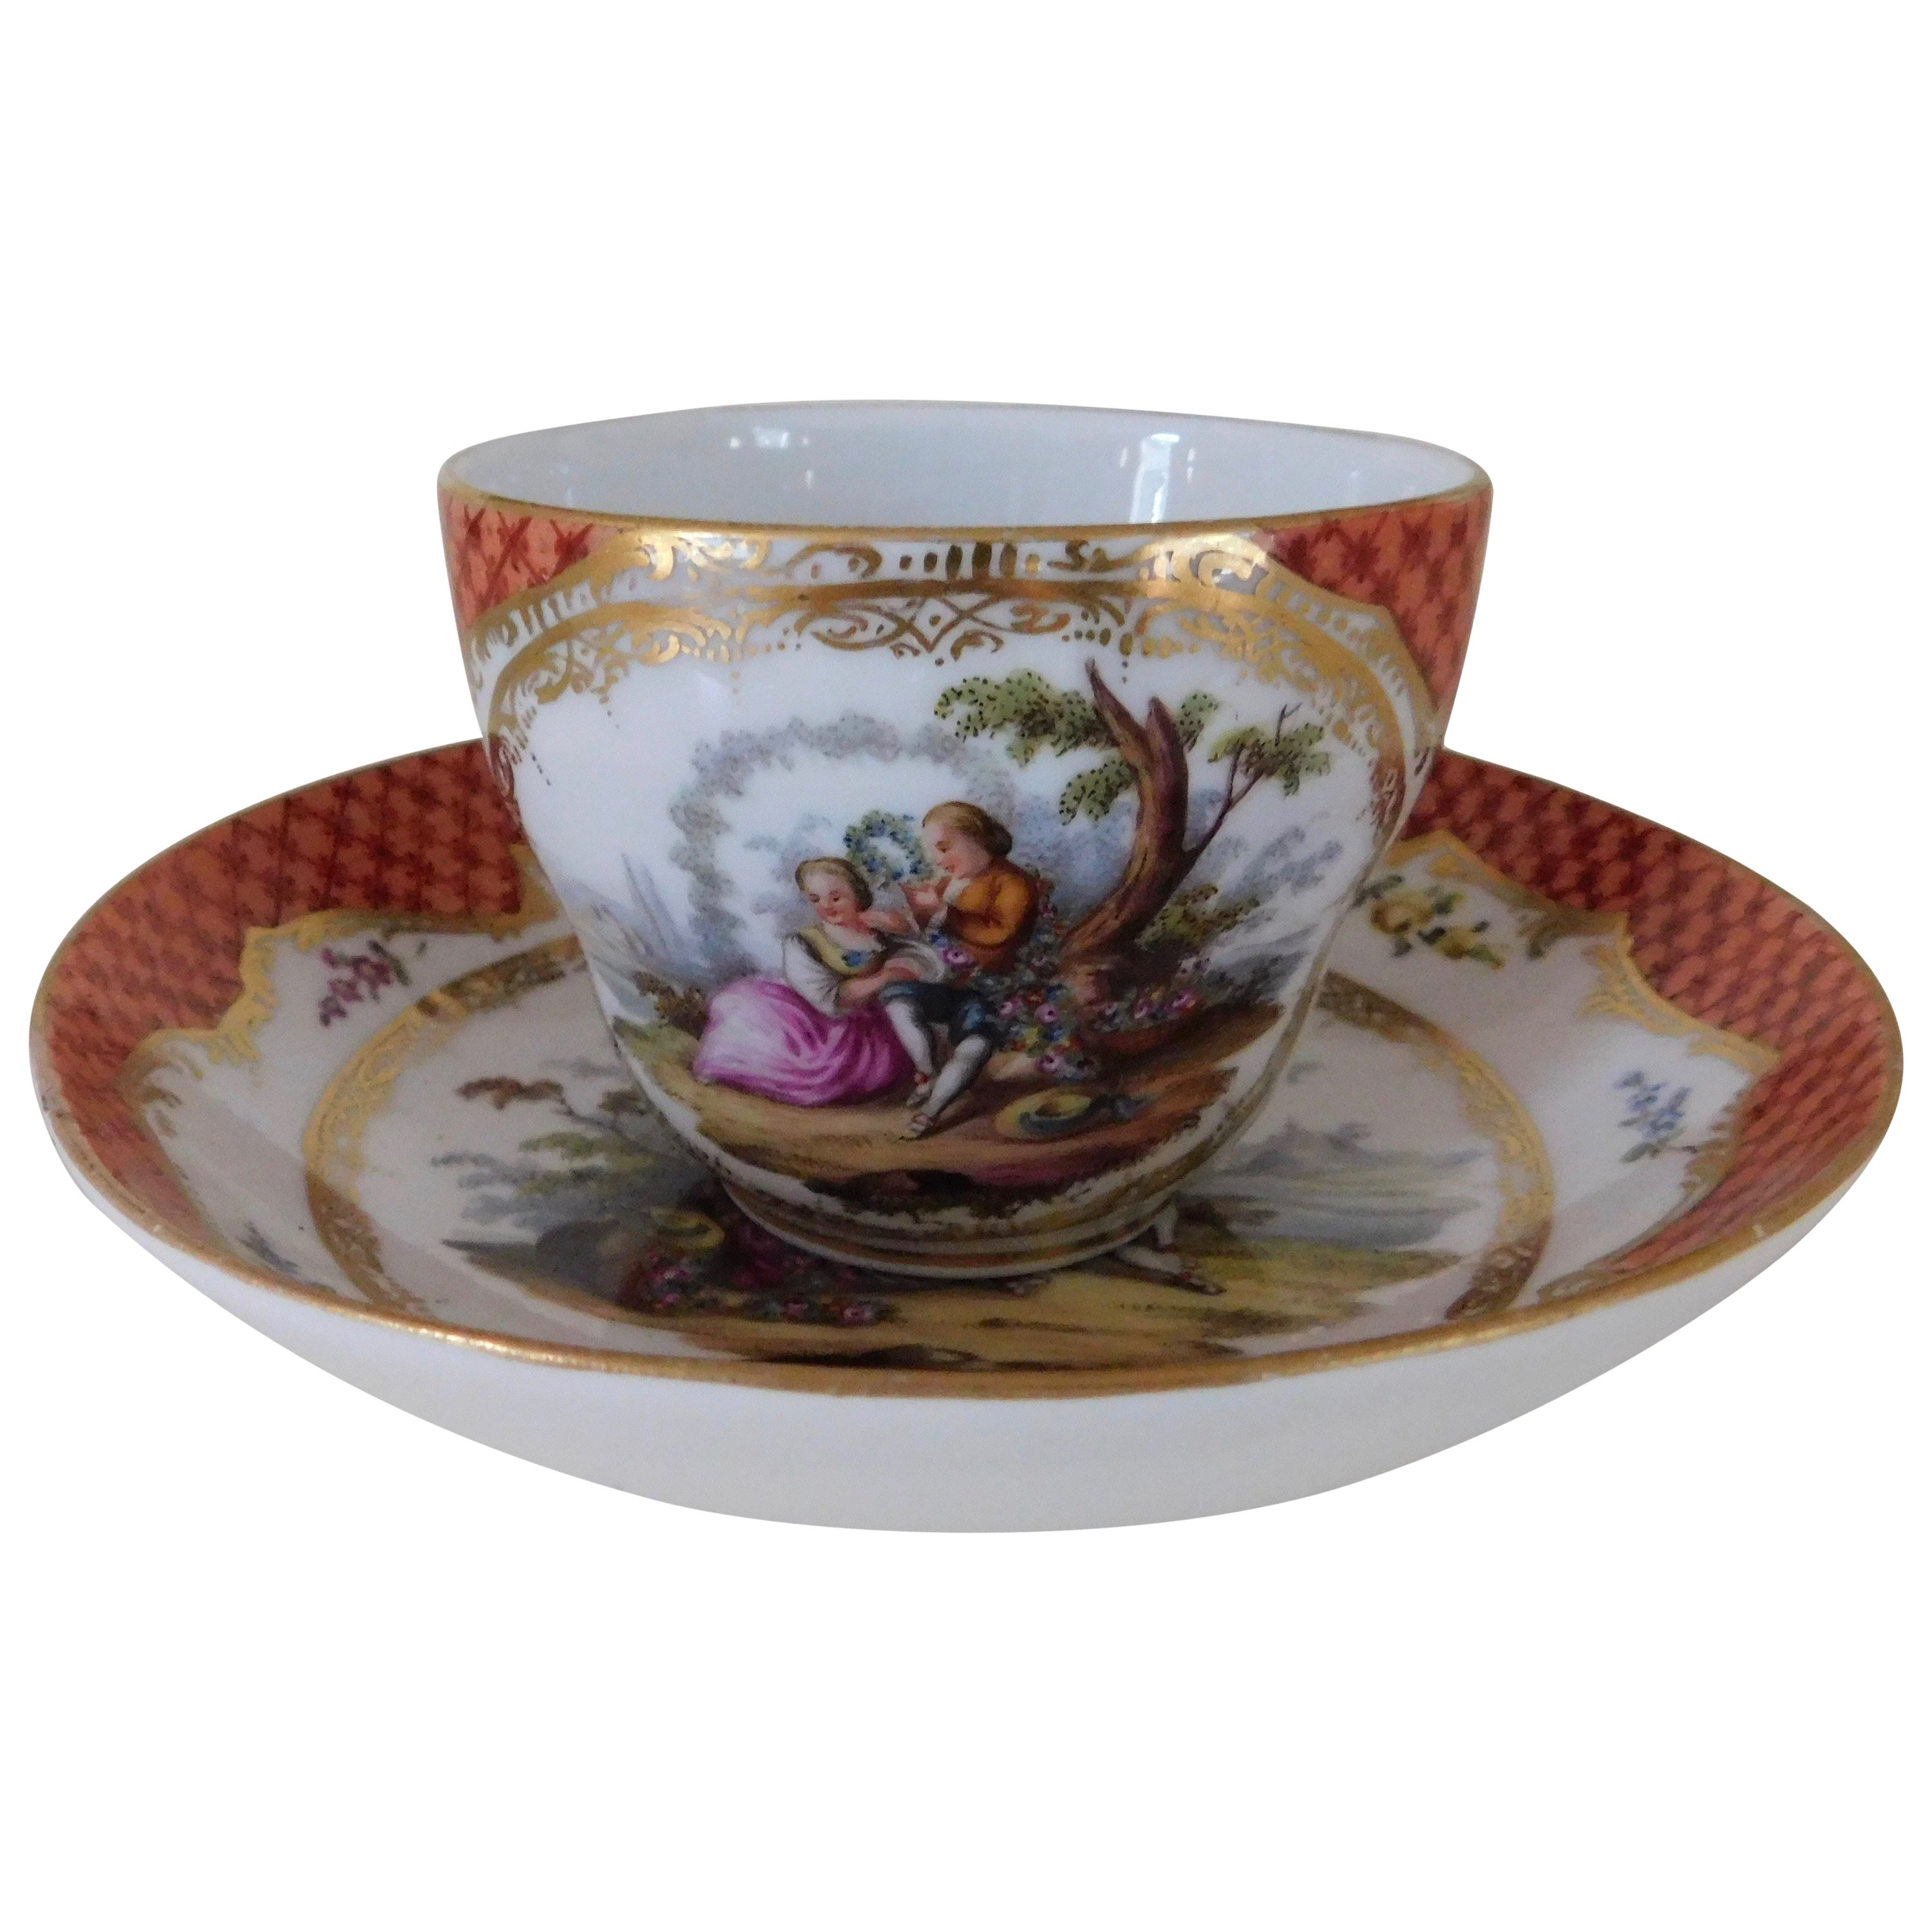 19th Century, Meissen Porcelain Cup and Saucer